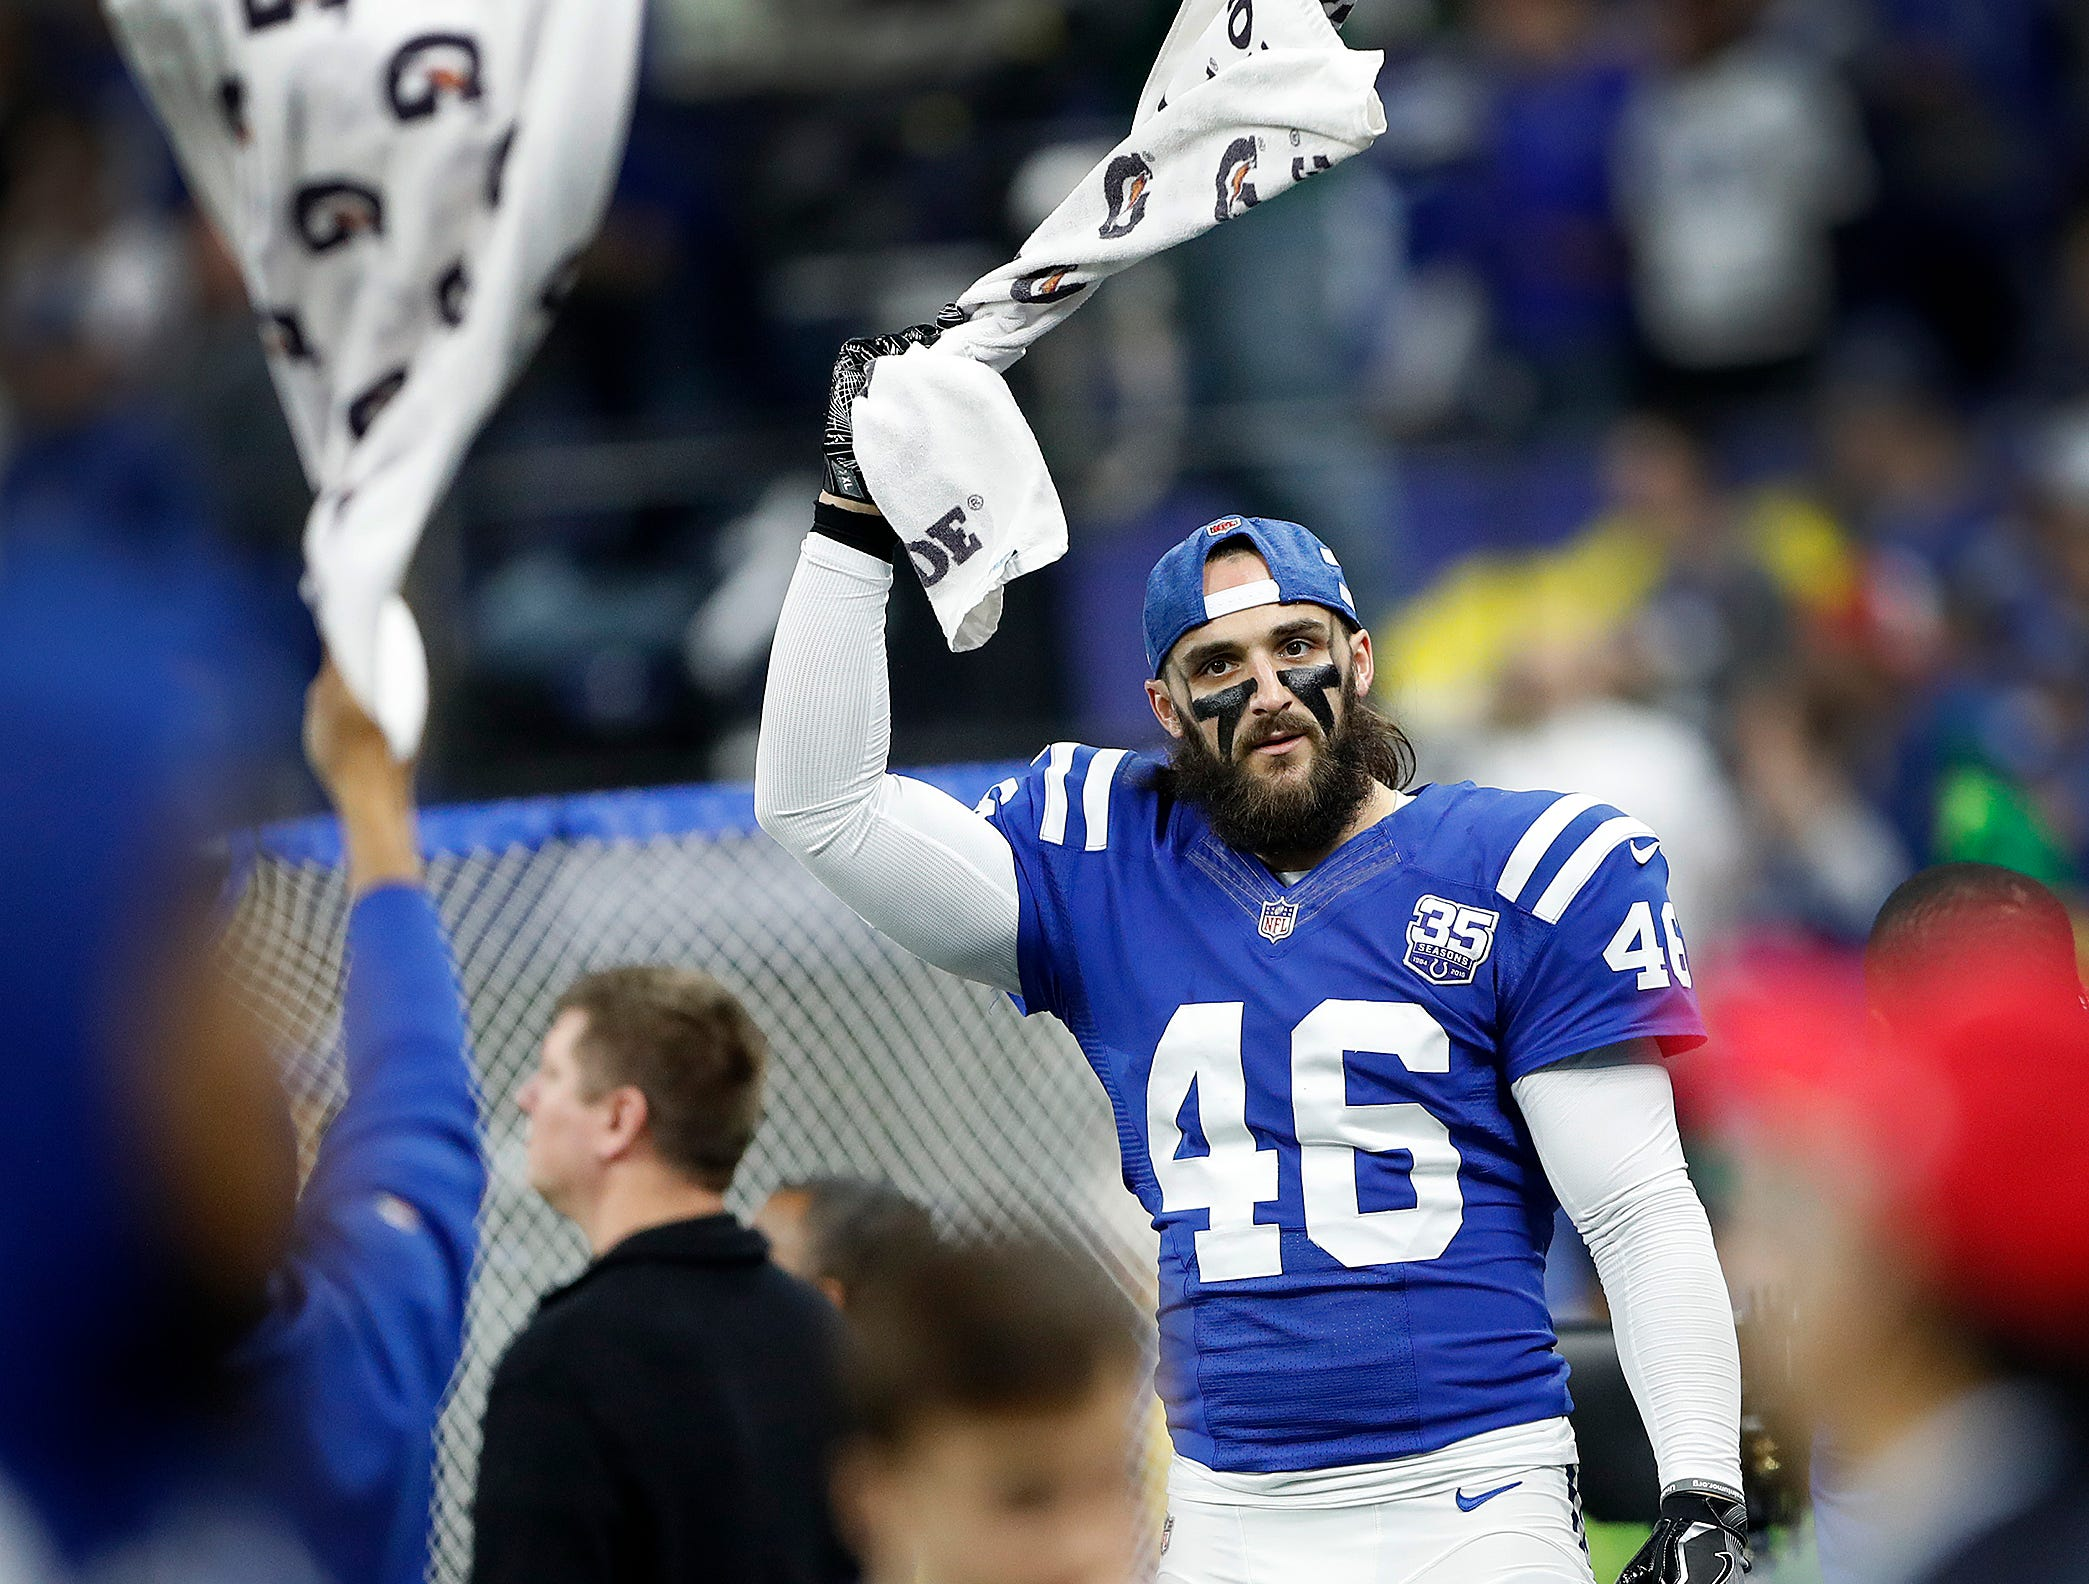 Indianapolis Colts long snapper Luke Rhodes (46) waves a towel to get the Colts fans on their feet to cheer in the second half of their game at Lucas Oil Stadium on Sunday, Dec. 23, 2018. The Colts defeated the Giants 28-27.